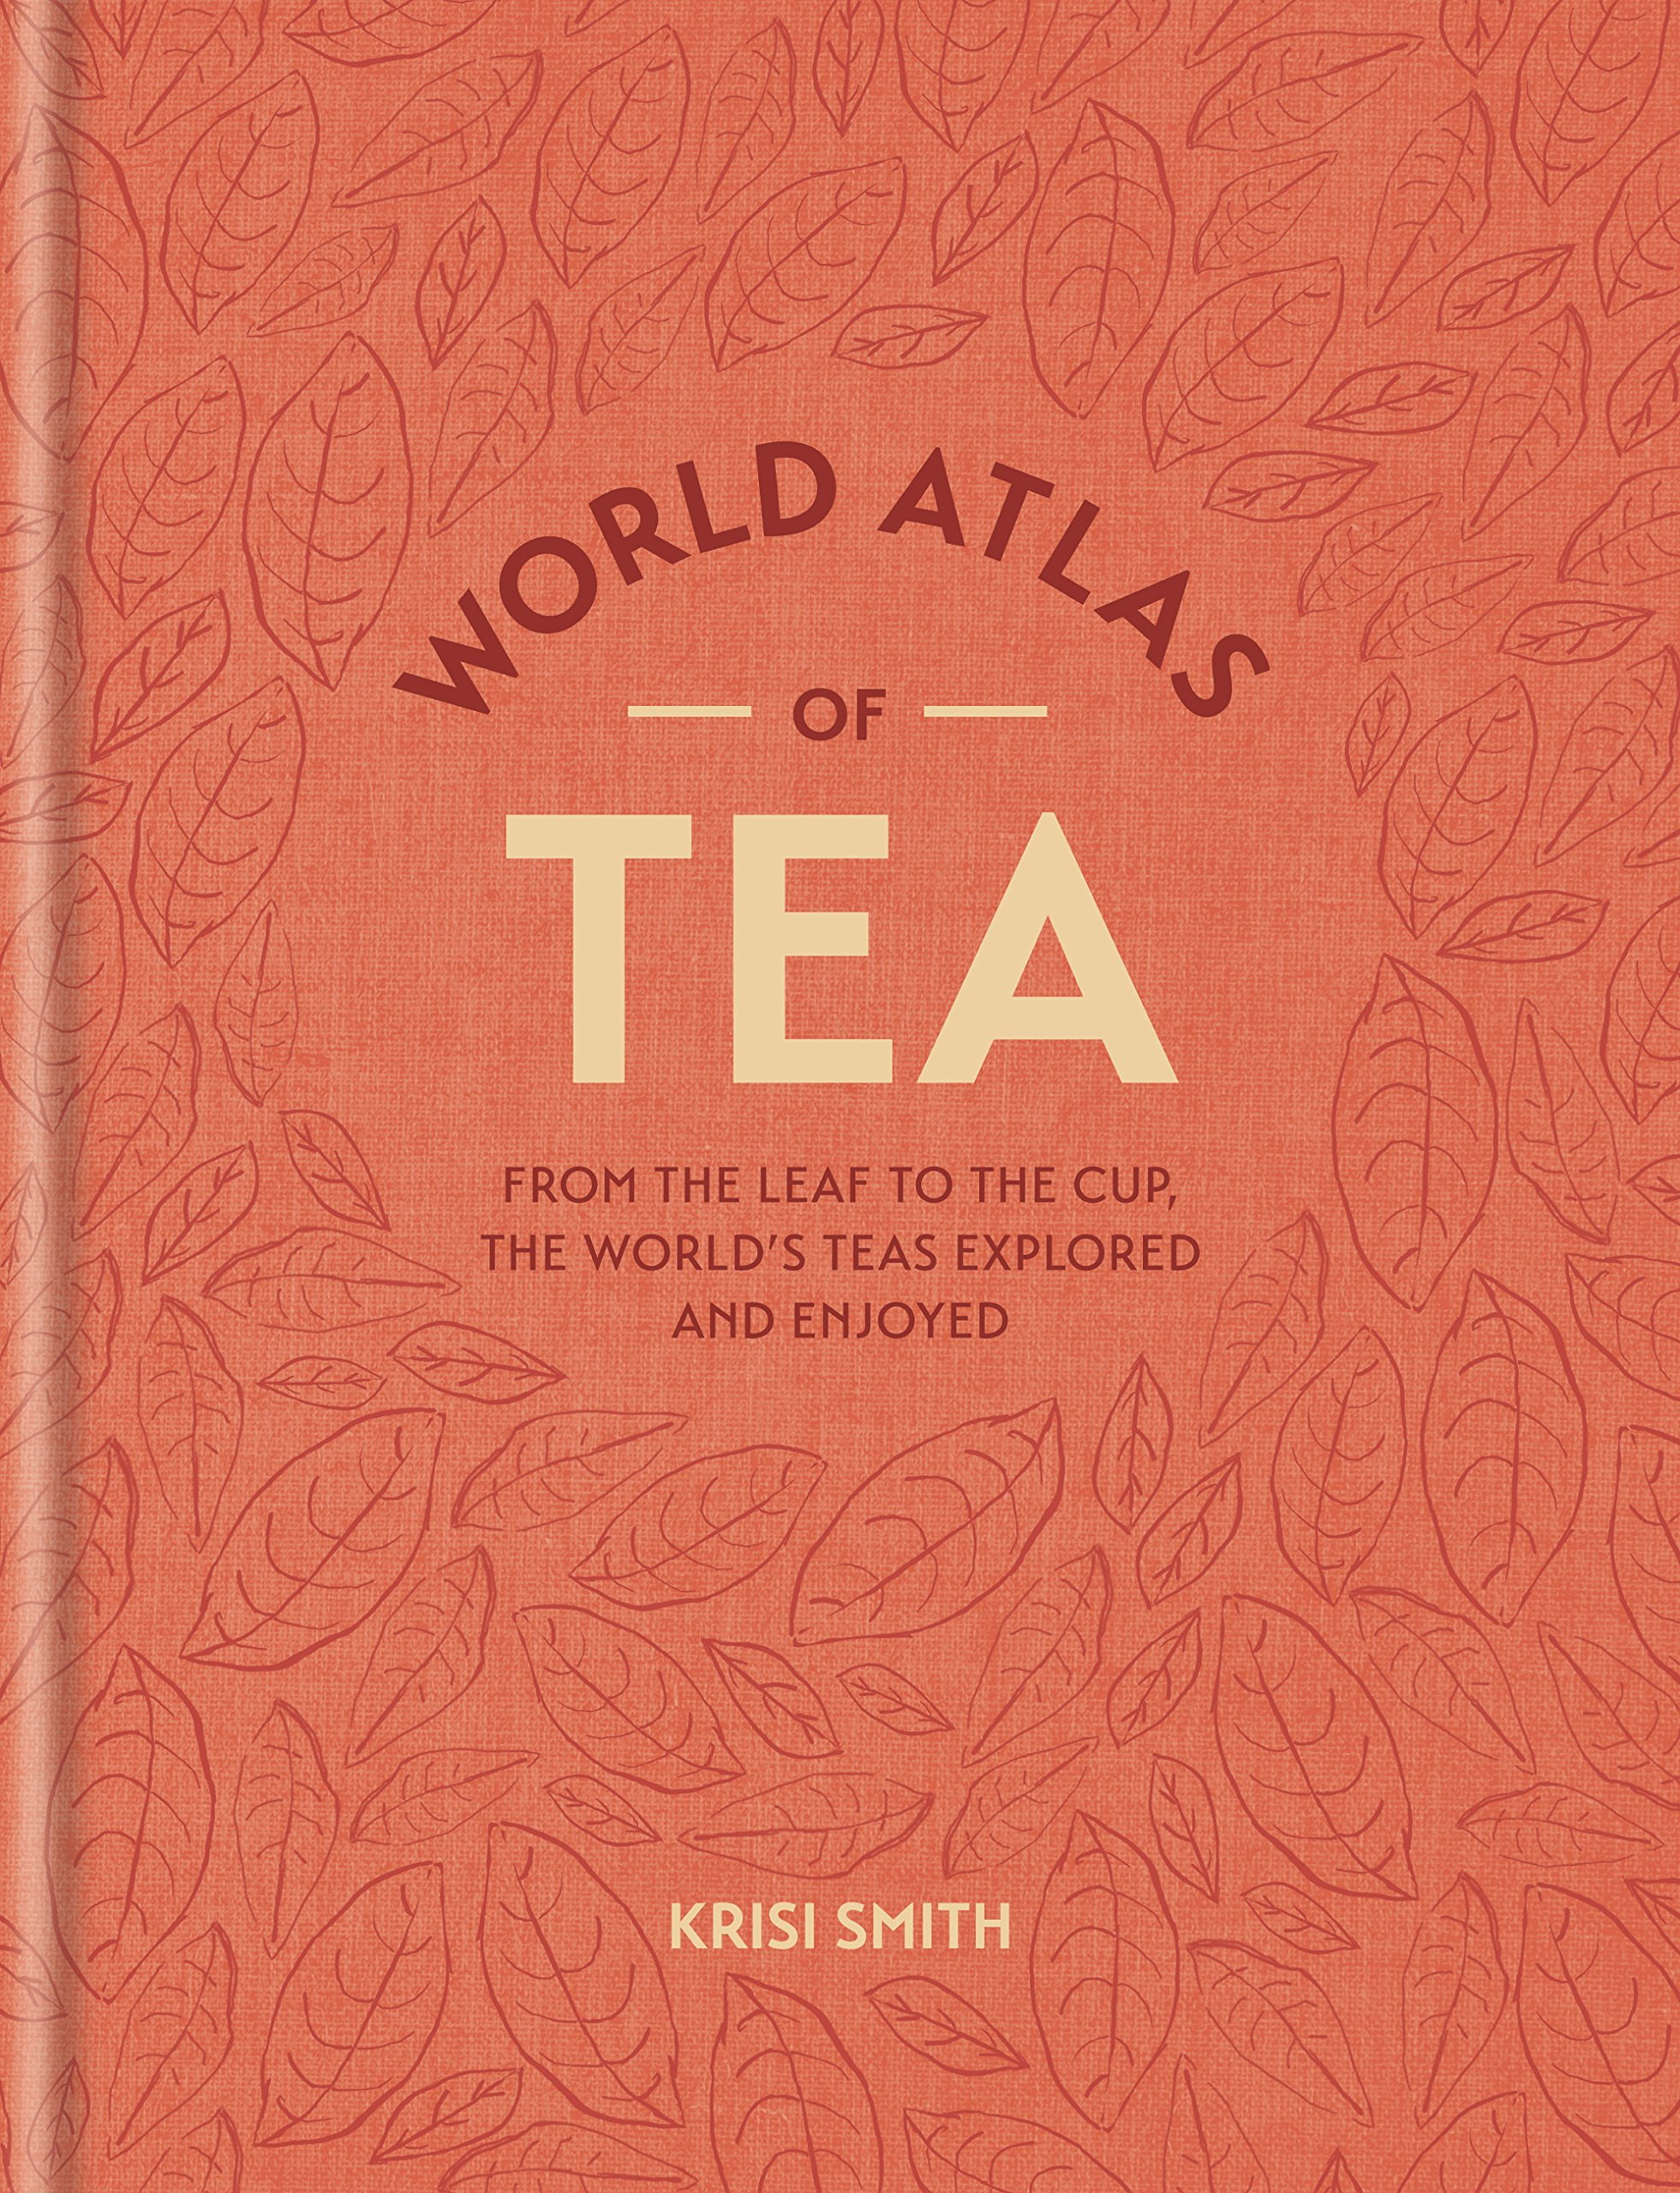 World Atlas Of Tea  From The Leaf To The Cup The World's Teas Explored And Enjoyed  English Edition